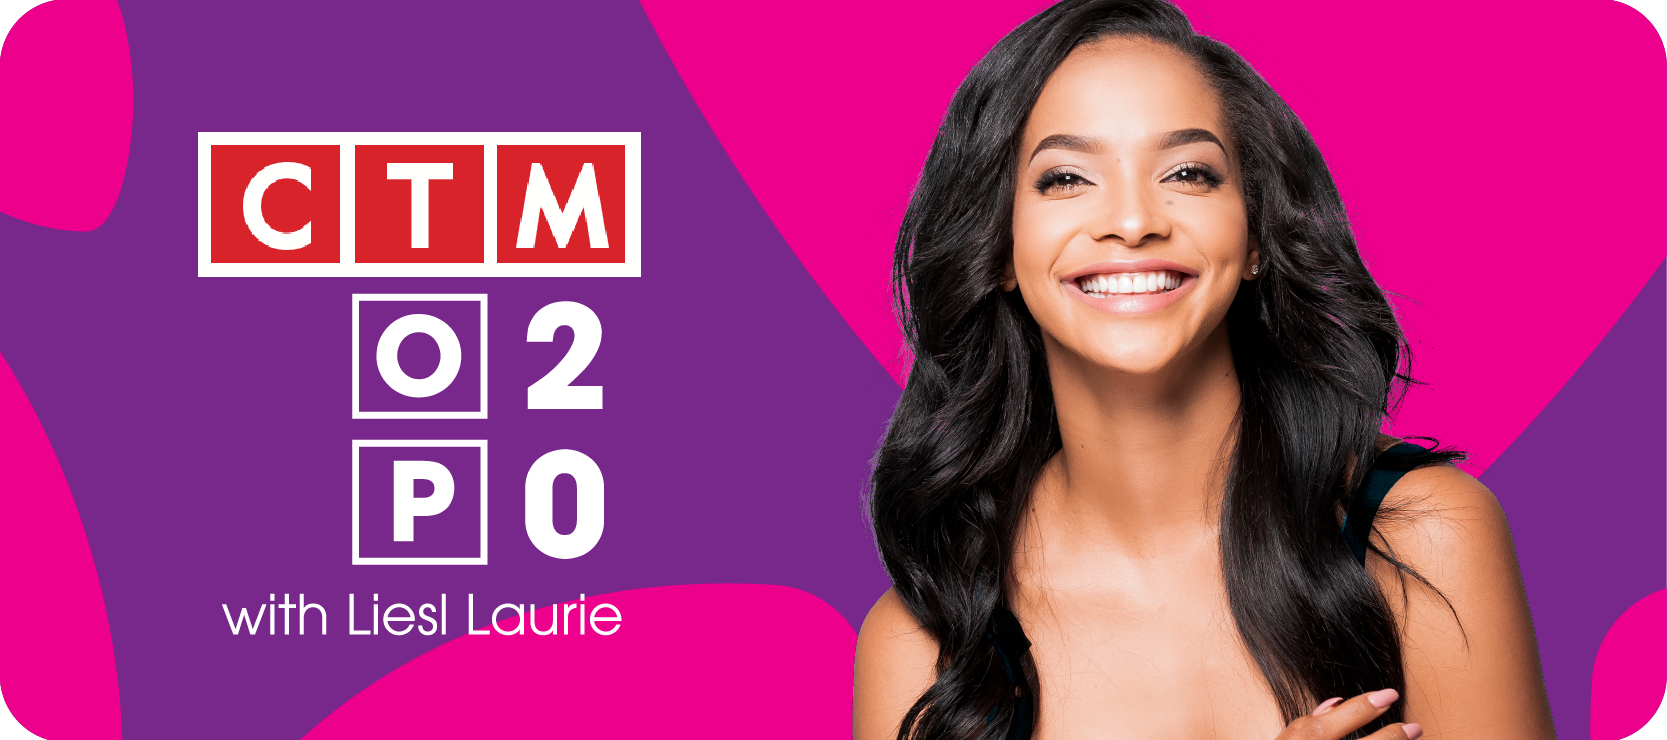 Chart-The CTM Top 20 with Liesl Laurie2021.png